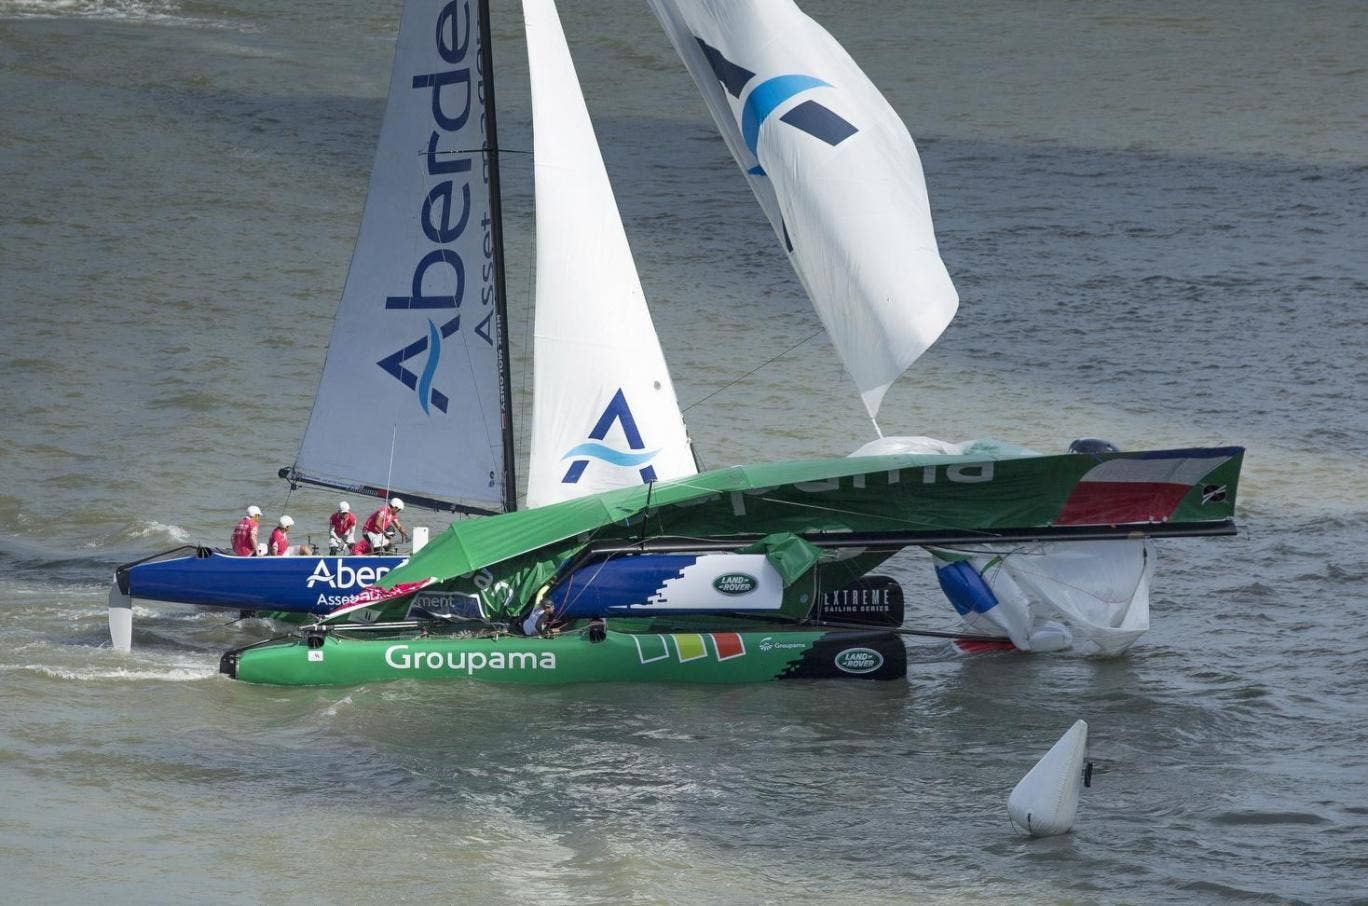 Serious crash but no serious injuries as Aberdeen Asset Management carves into potential French America's Cup contender Franck Cammas'  Groupama in the opening 2014 Extreme Sailing Series regatta in Singapore